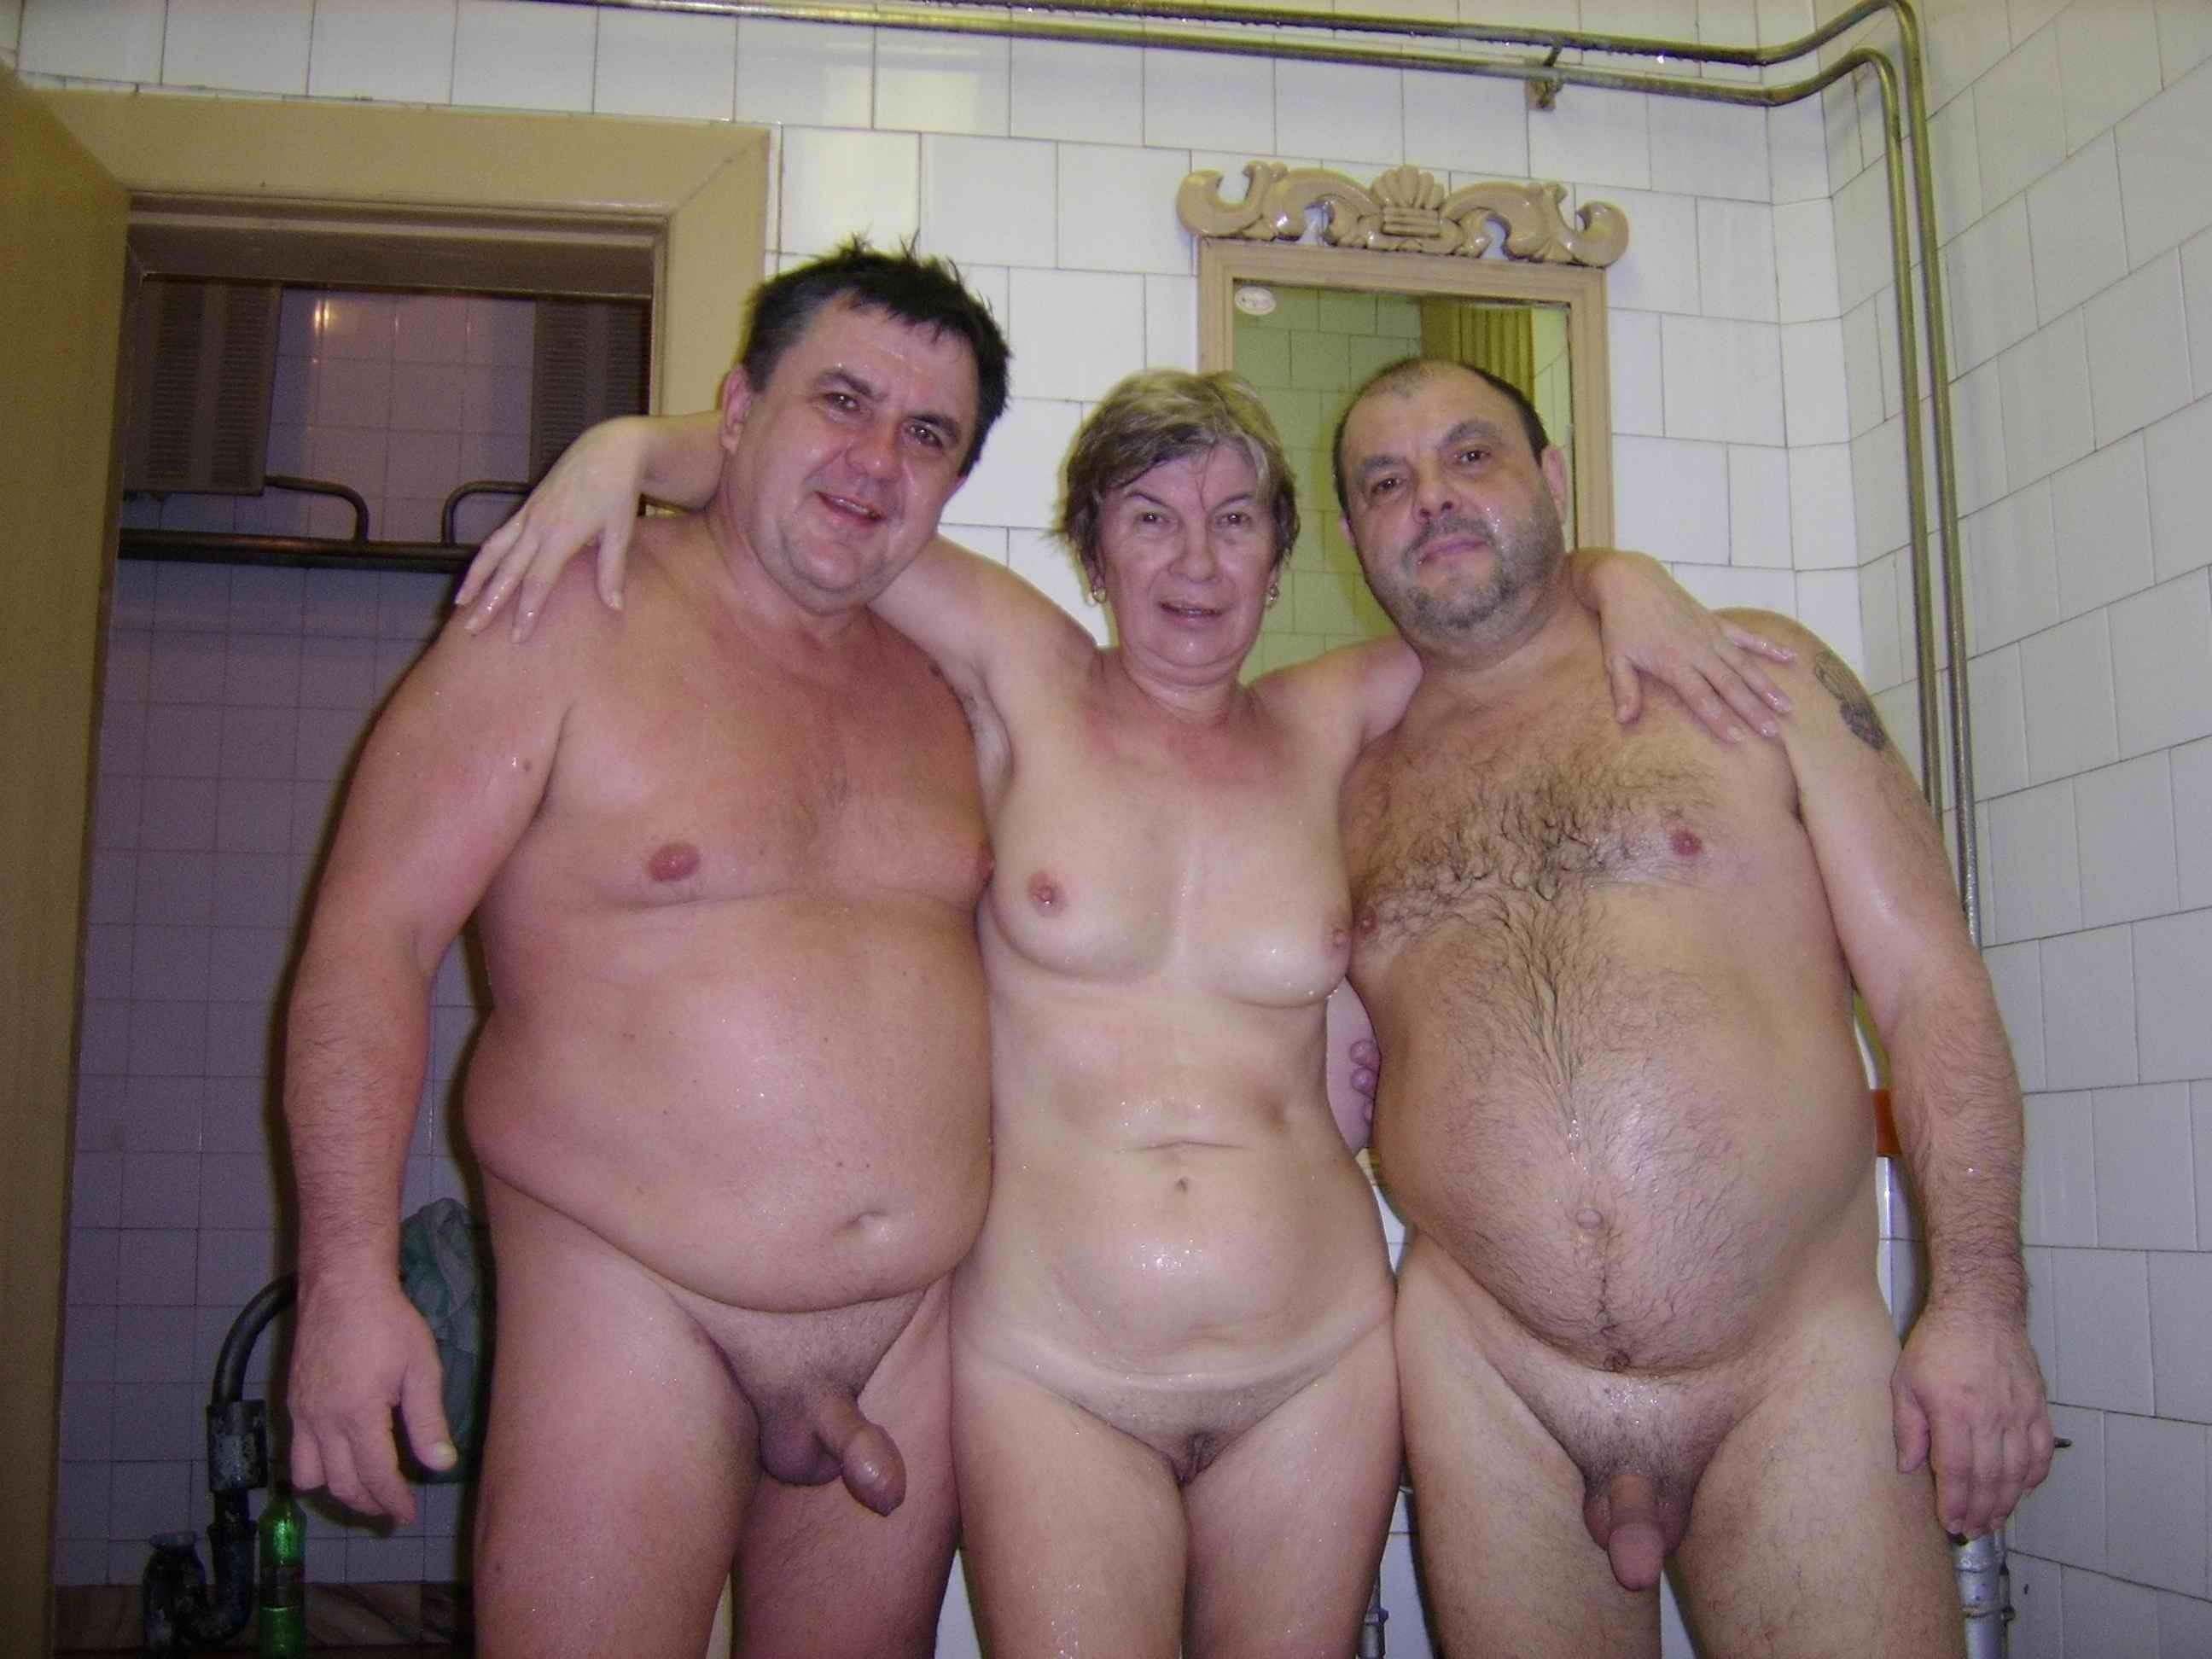 Grandma and grandpa swingers